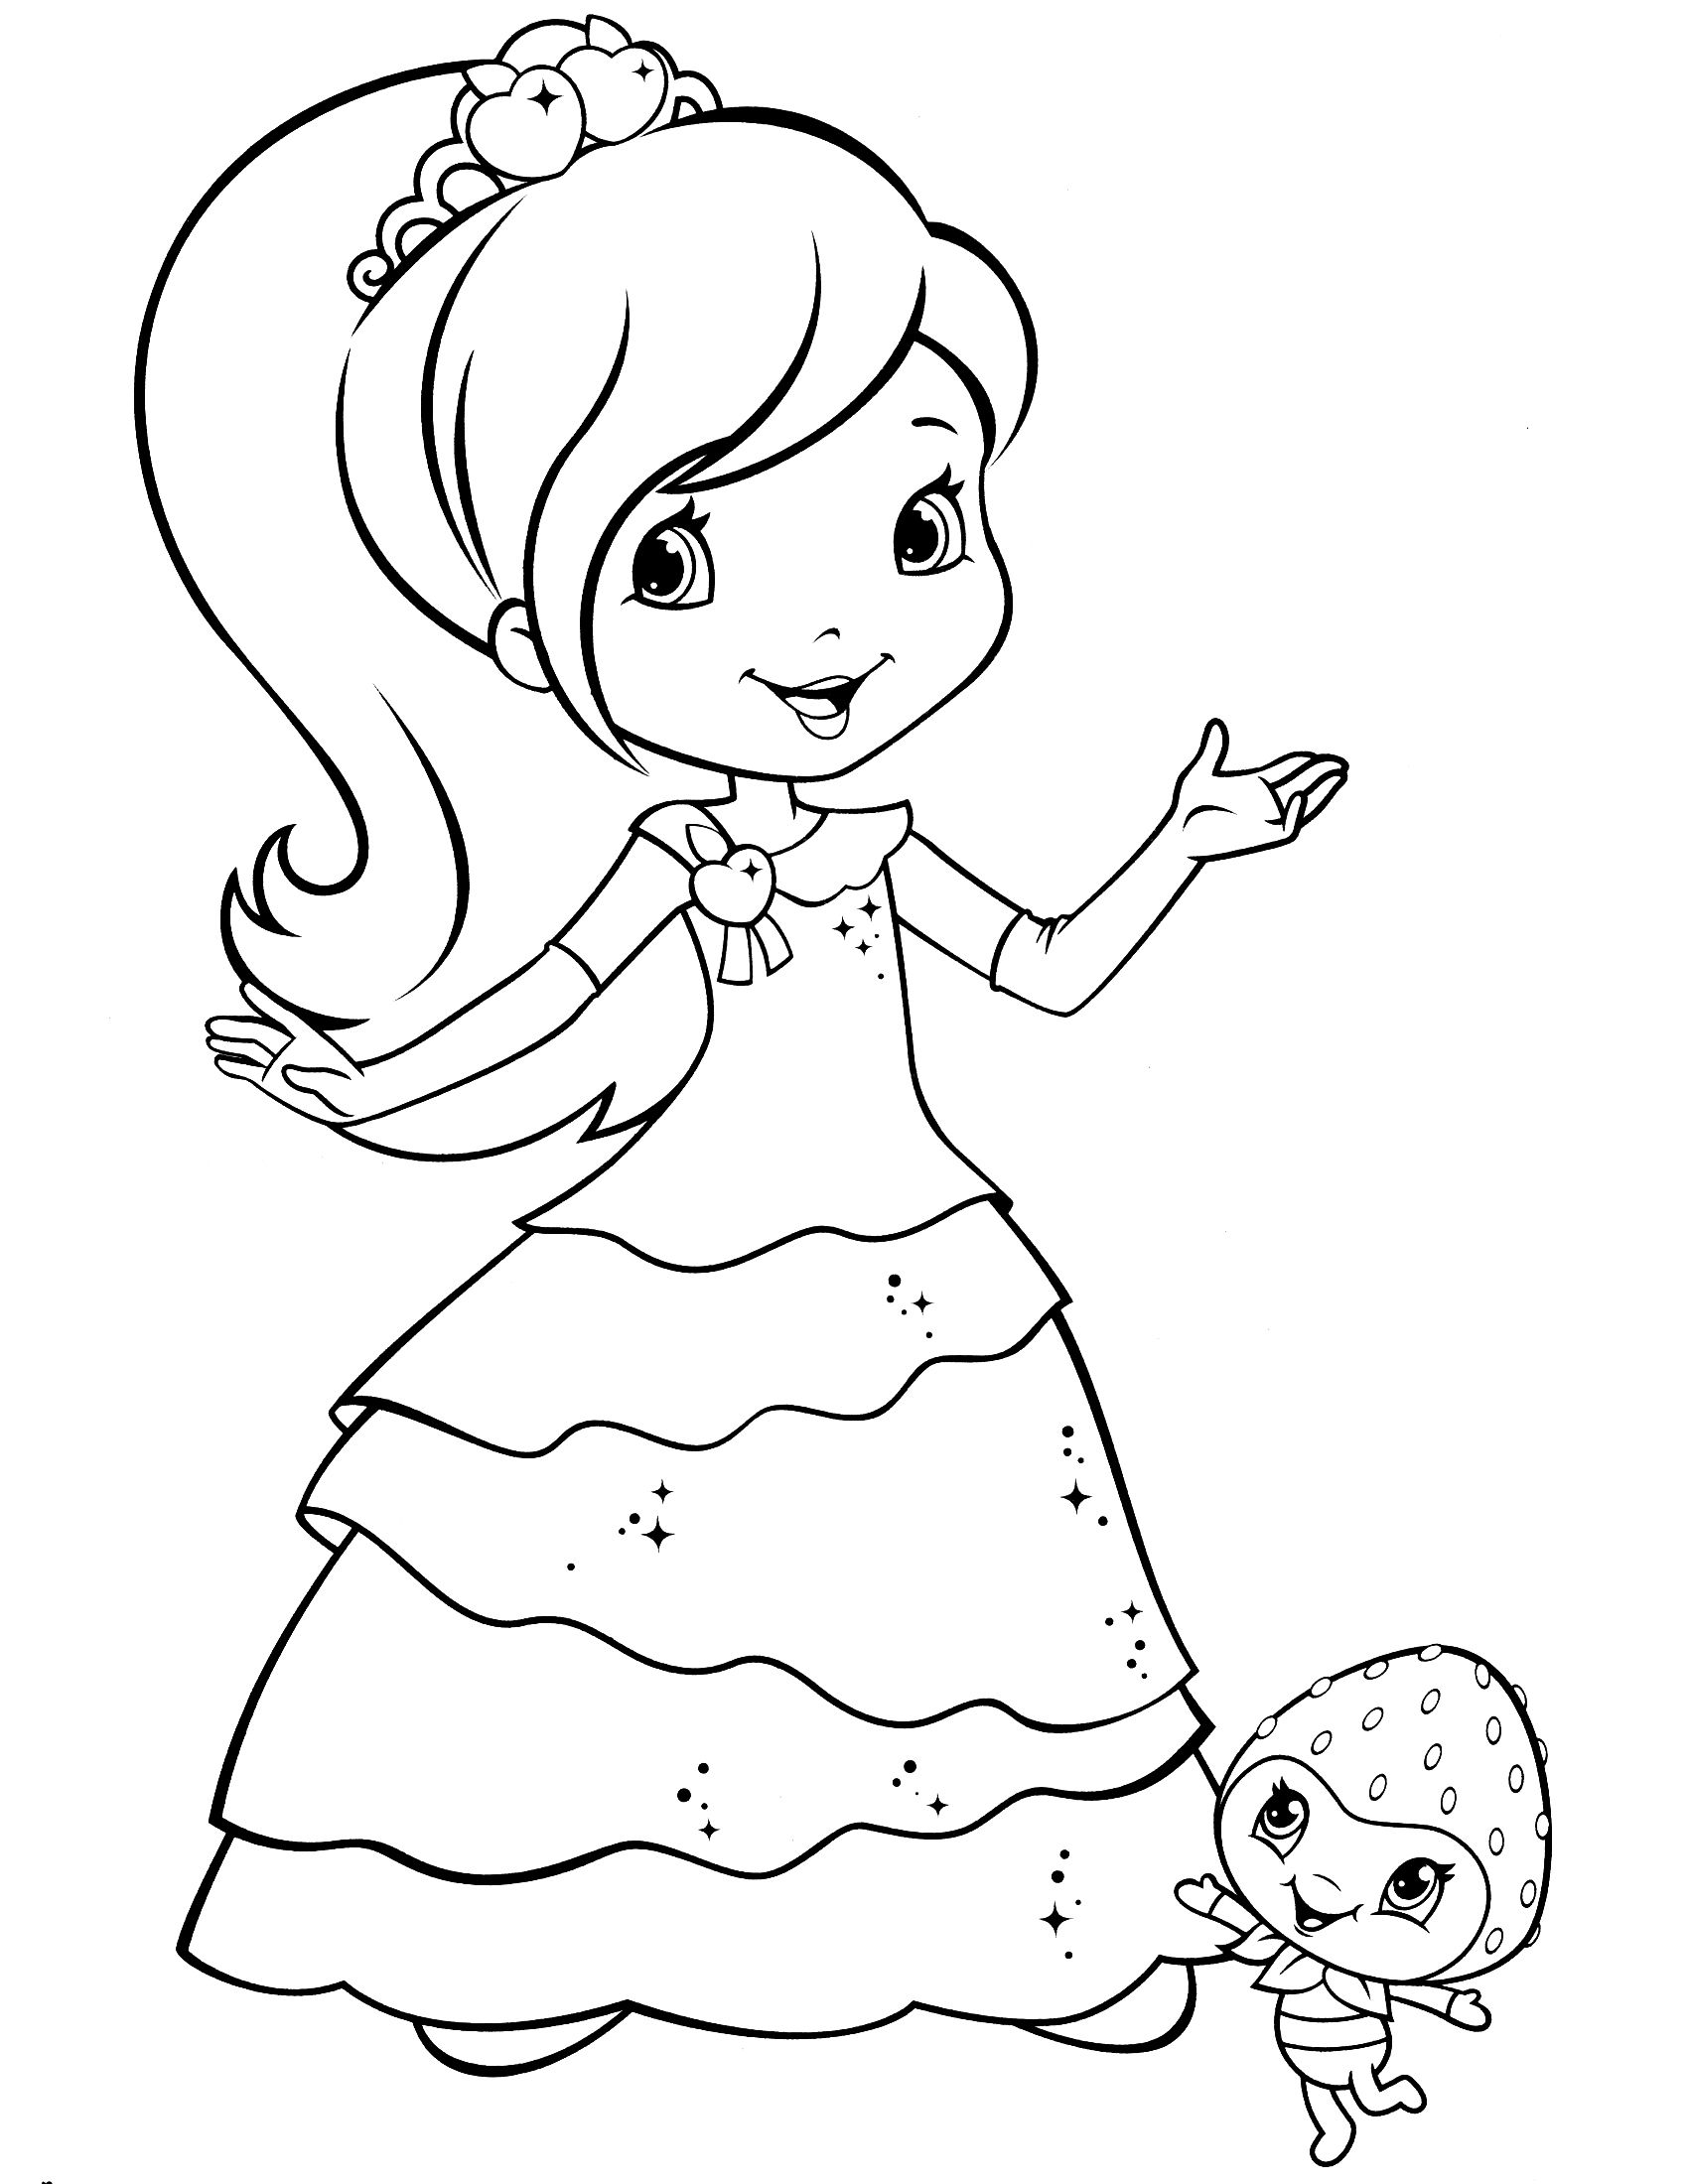 Strawberry Shortcake Coloring Page Dibujos Dibujos Para